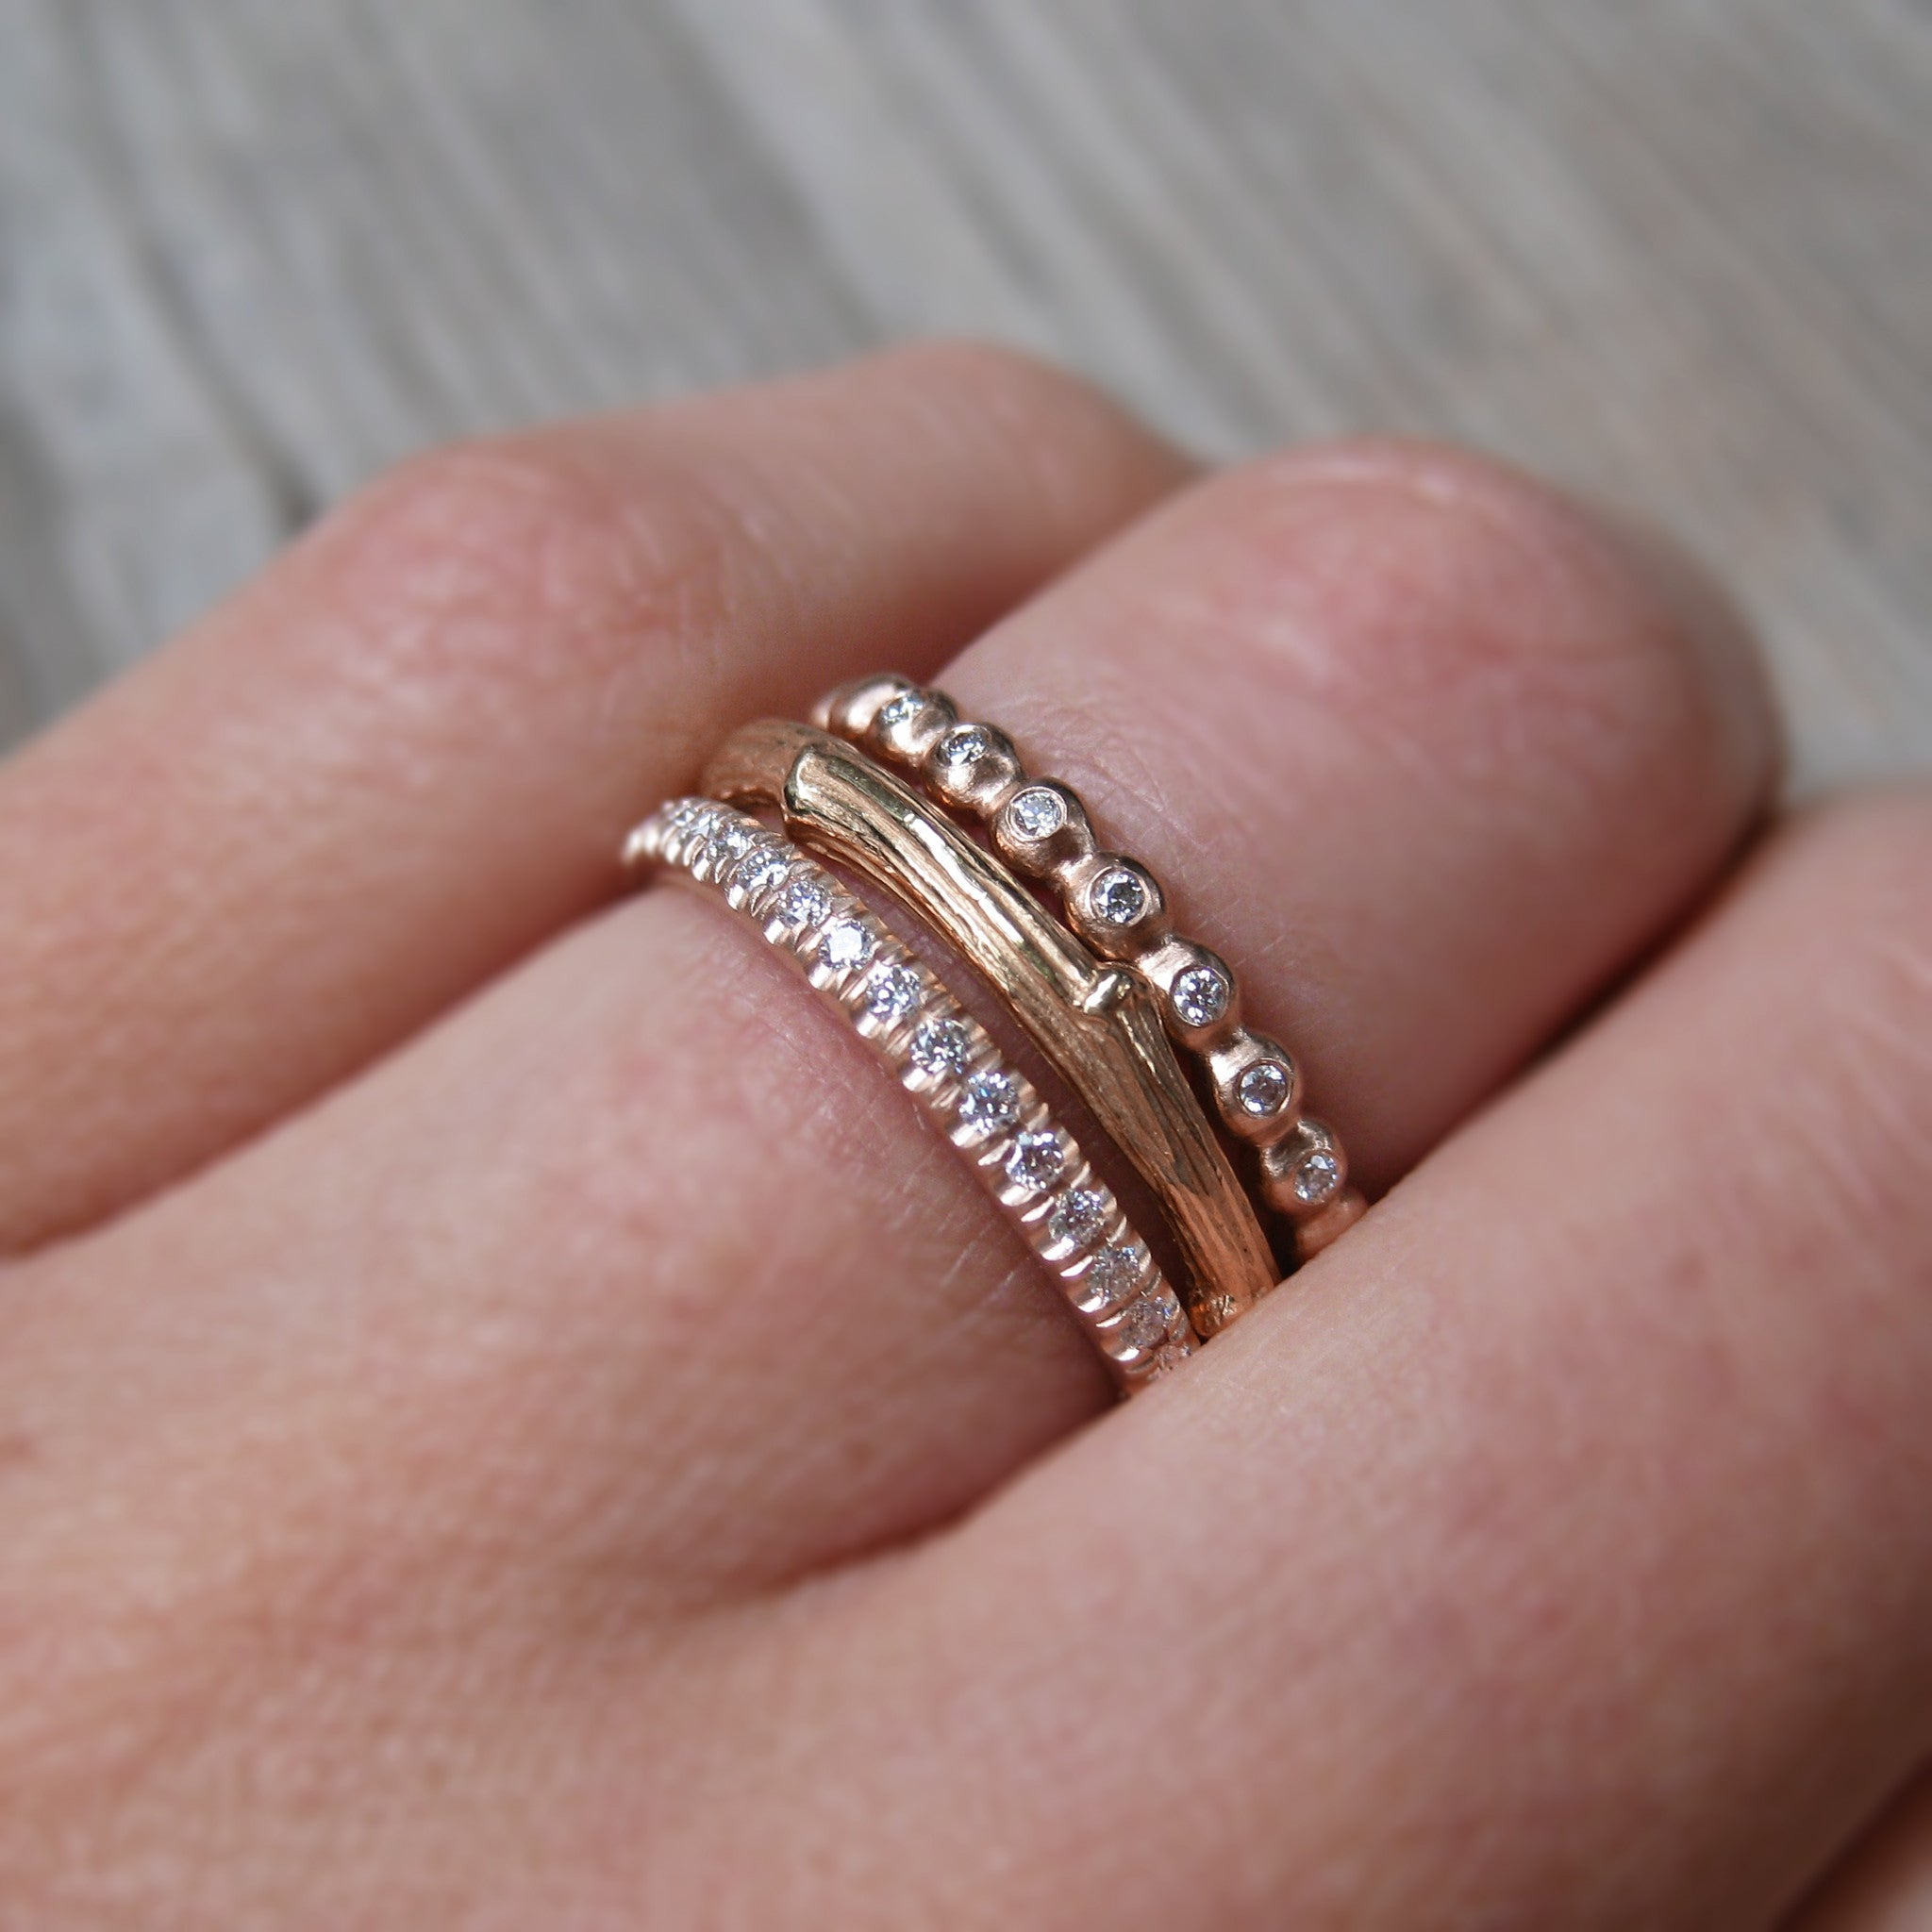 eternity band hand gold in engagement with diamond ring white rings engraved wedding designs side